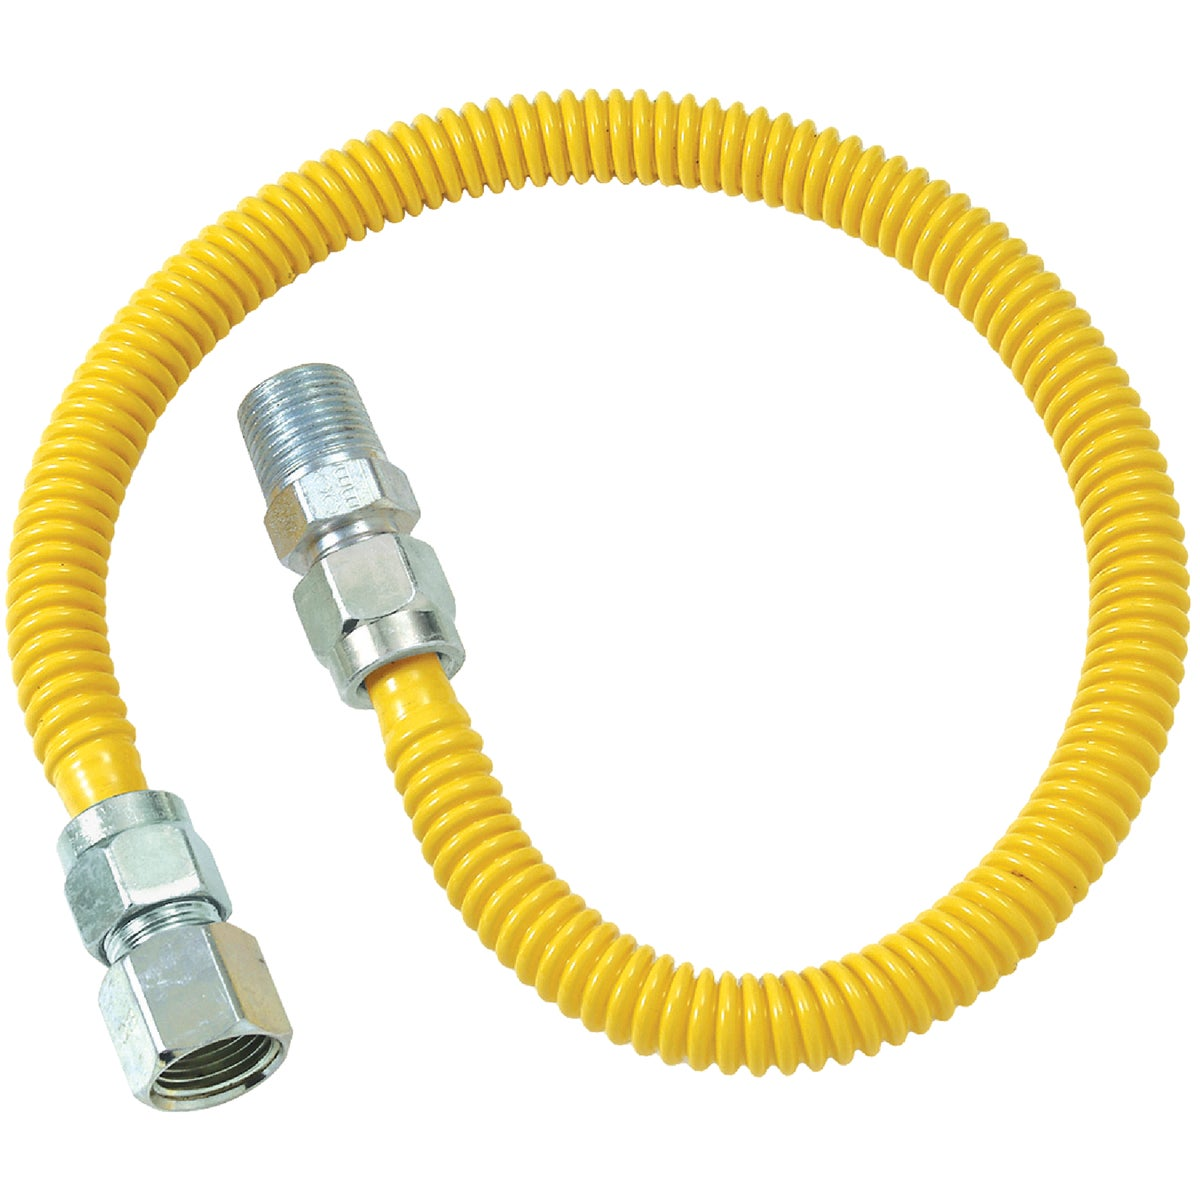 1/2X24 GAS CONNECTOR - CSSD54-24P by Brass Craft